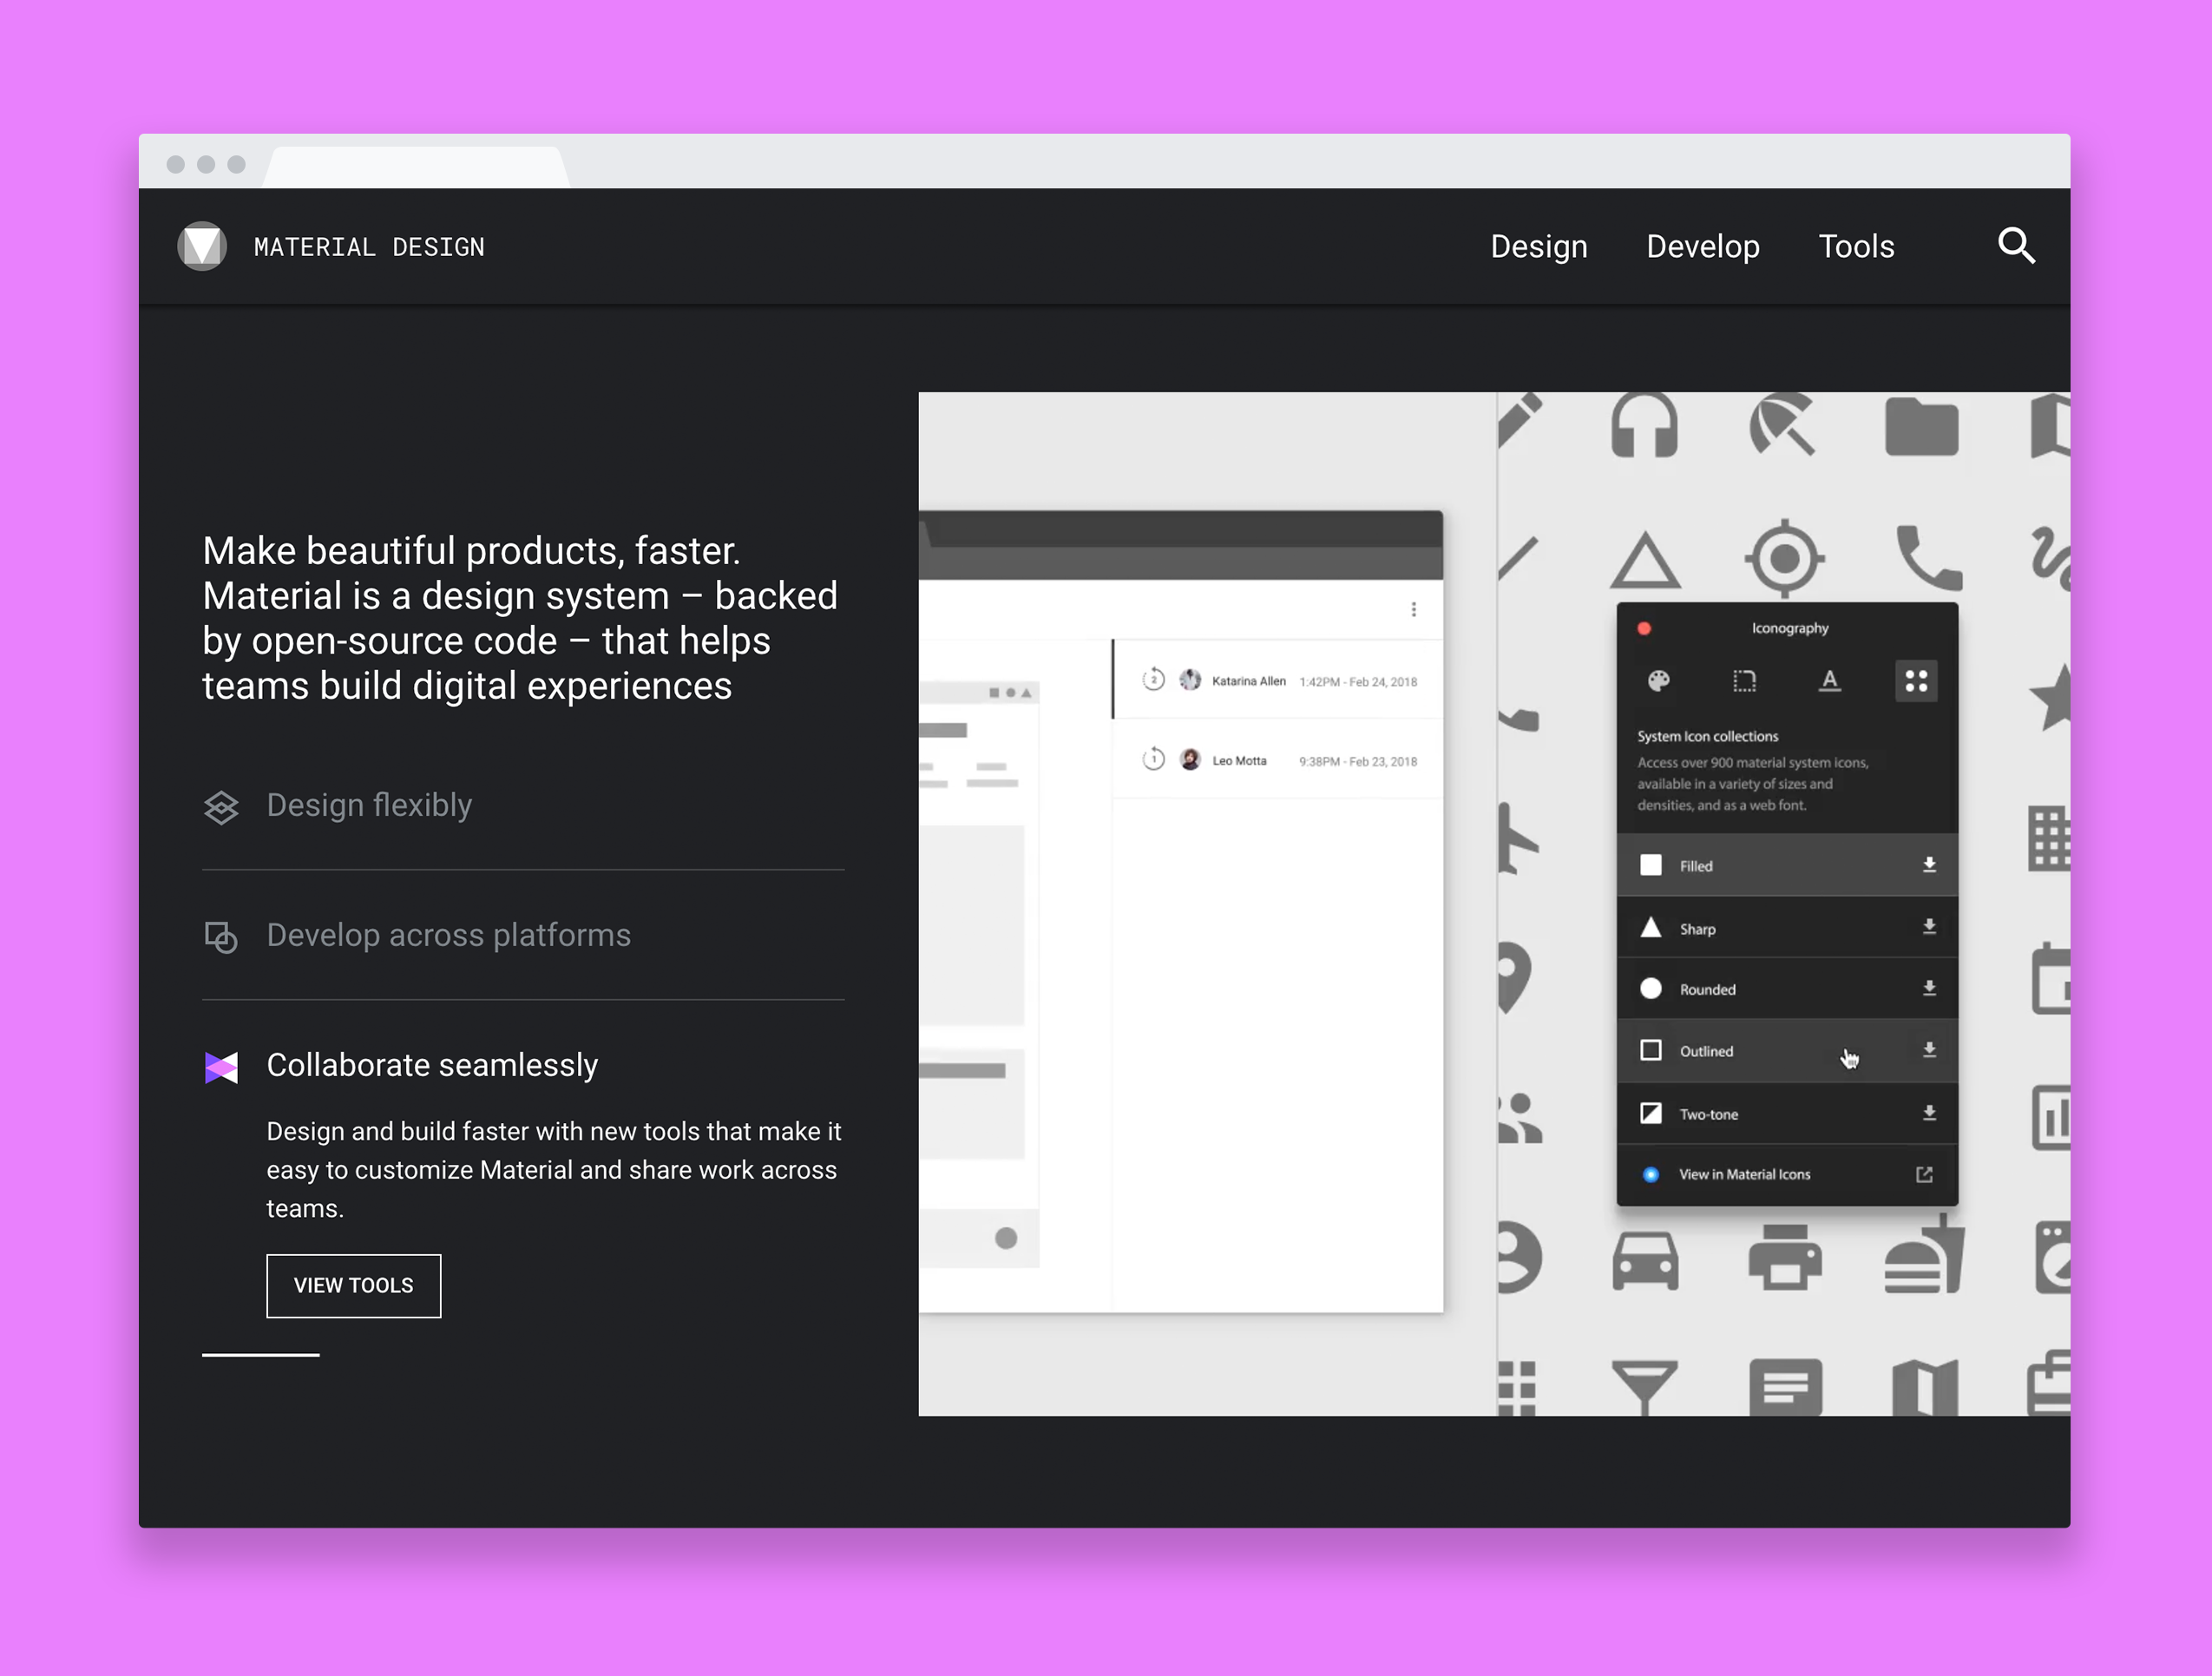 Google makes its Material Design system easier to customize